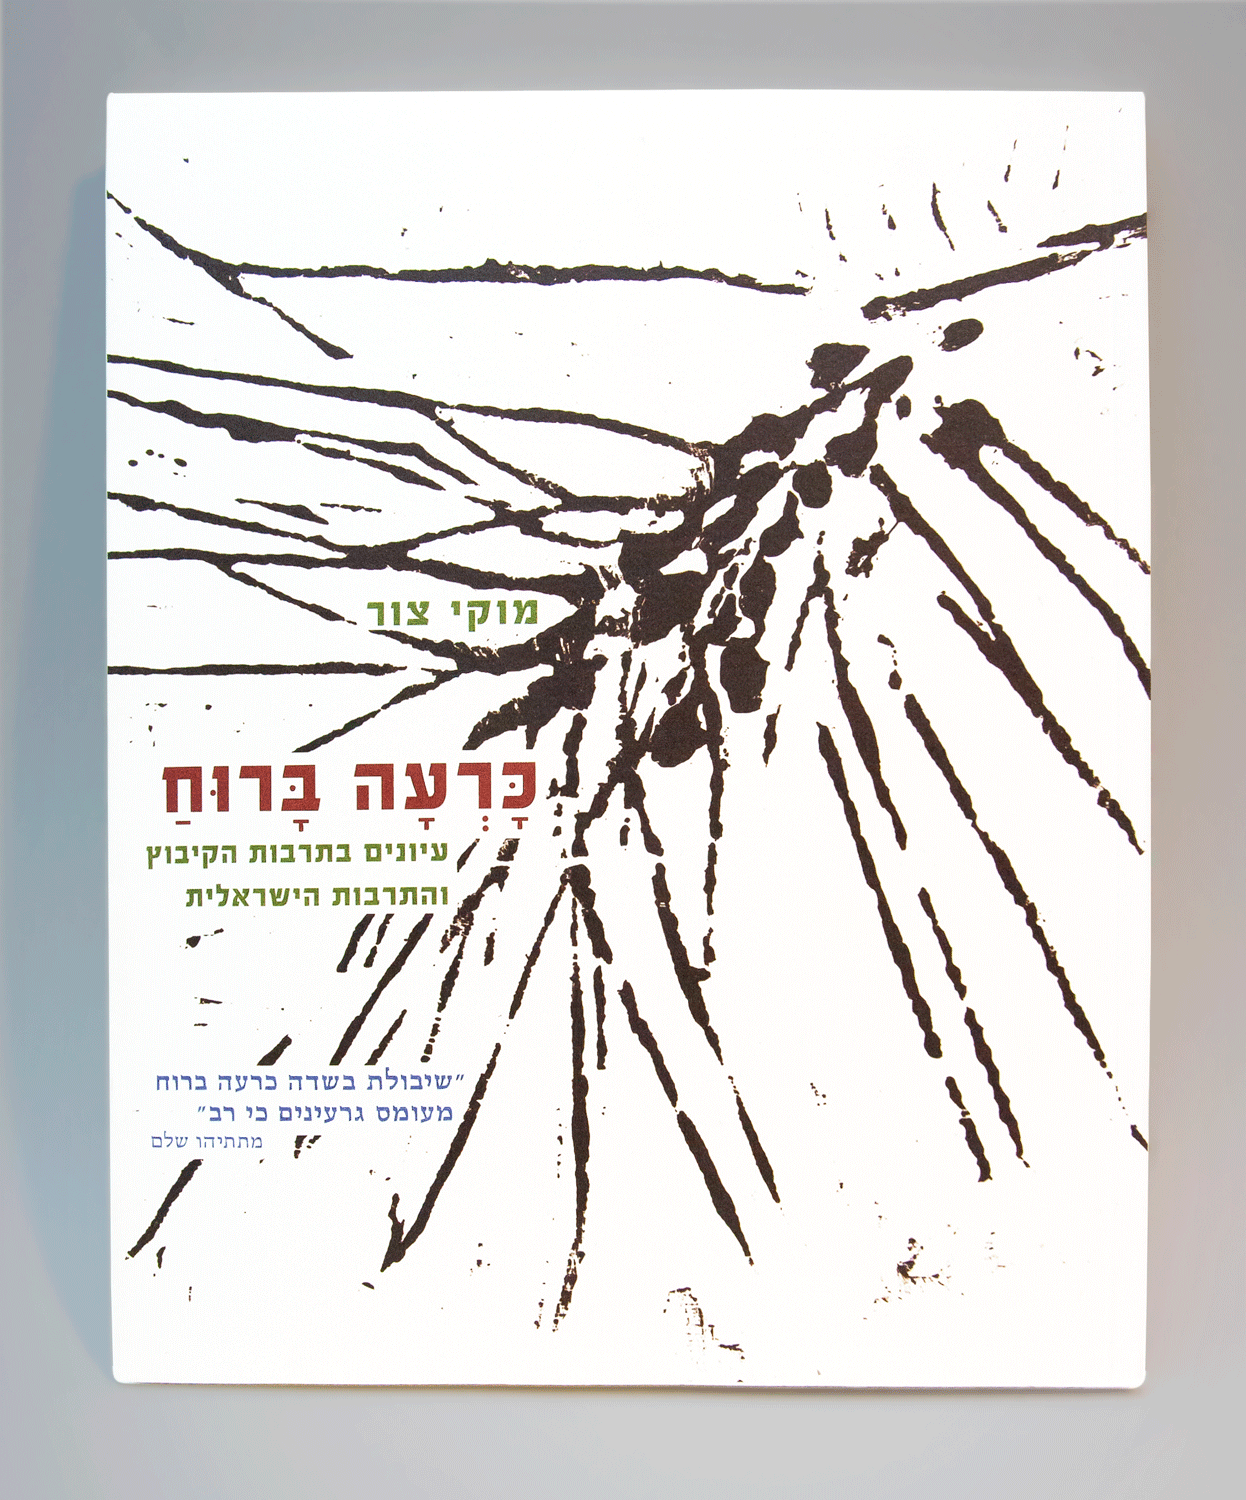 http://bigeyes.co.il/wp-content/uploads/2019/04/Karaa-front.png